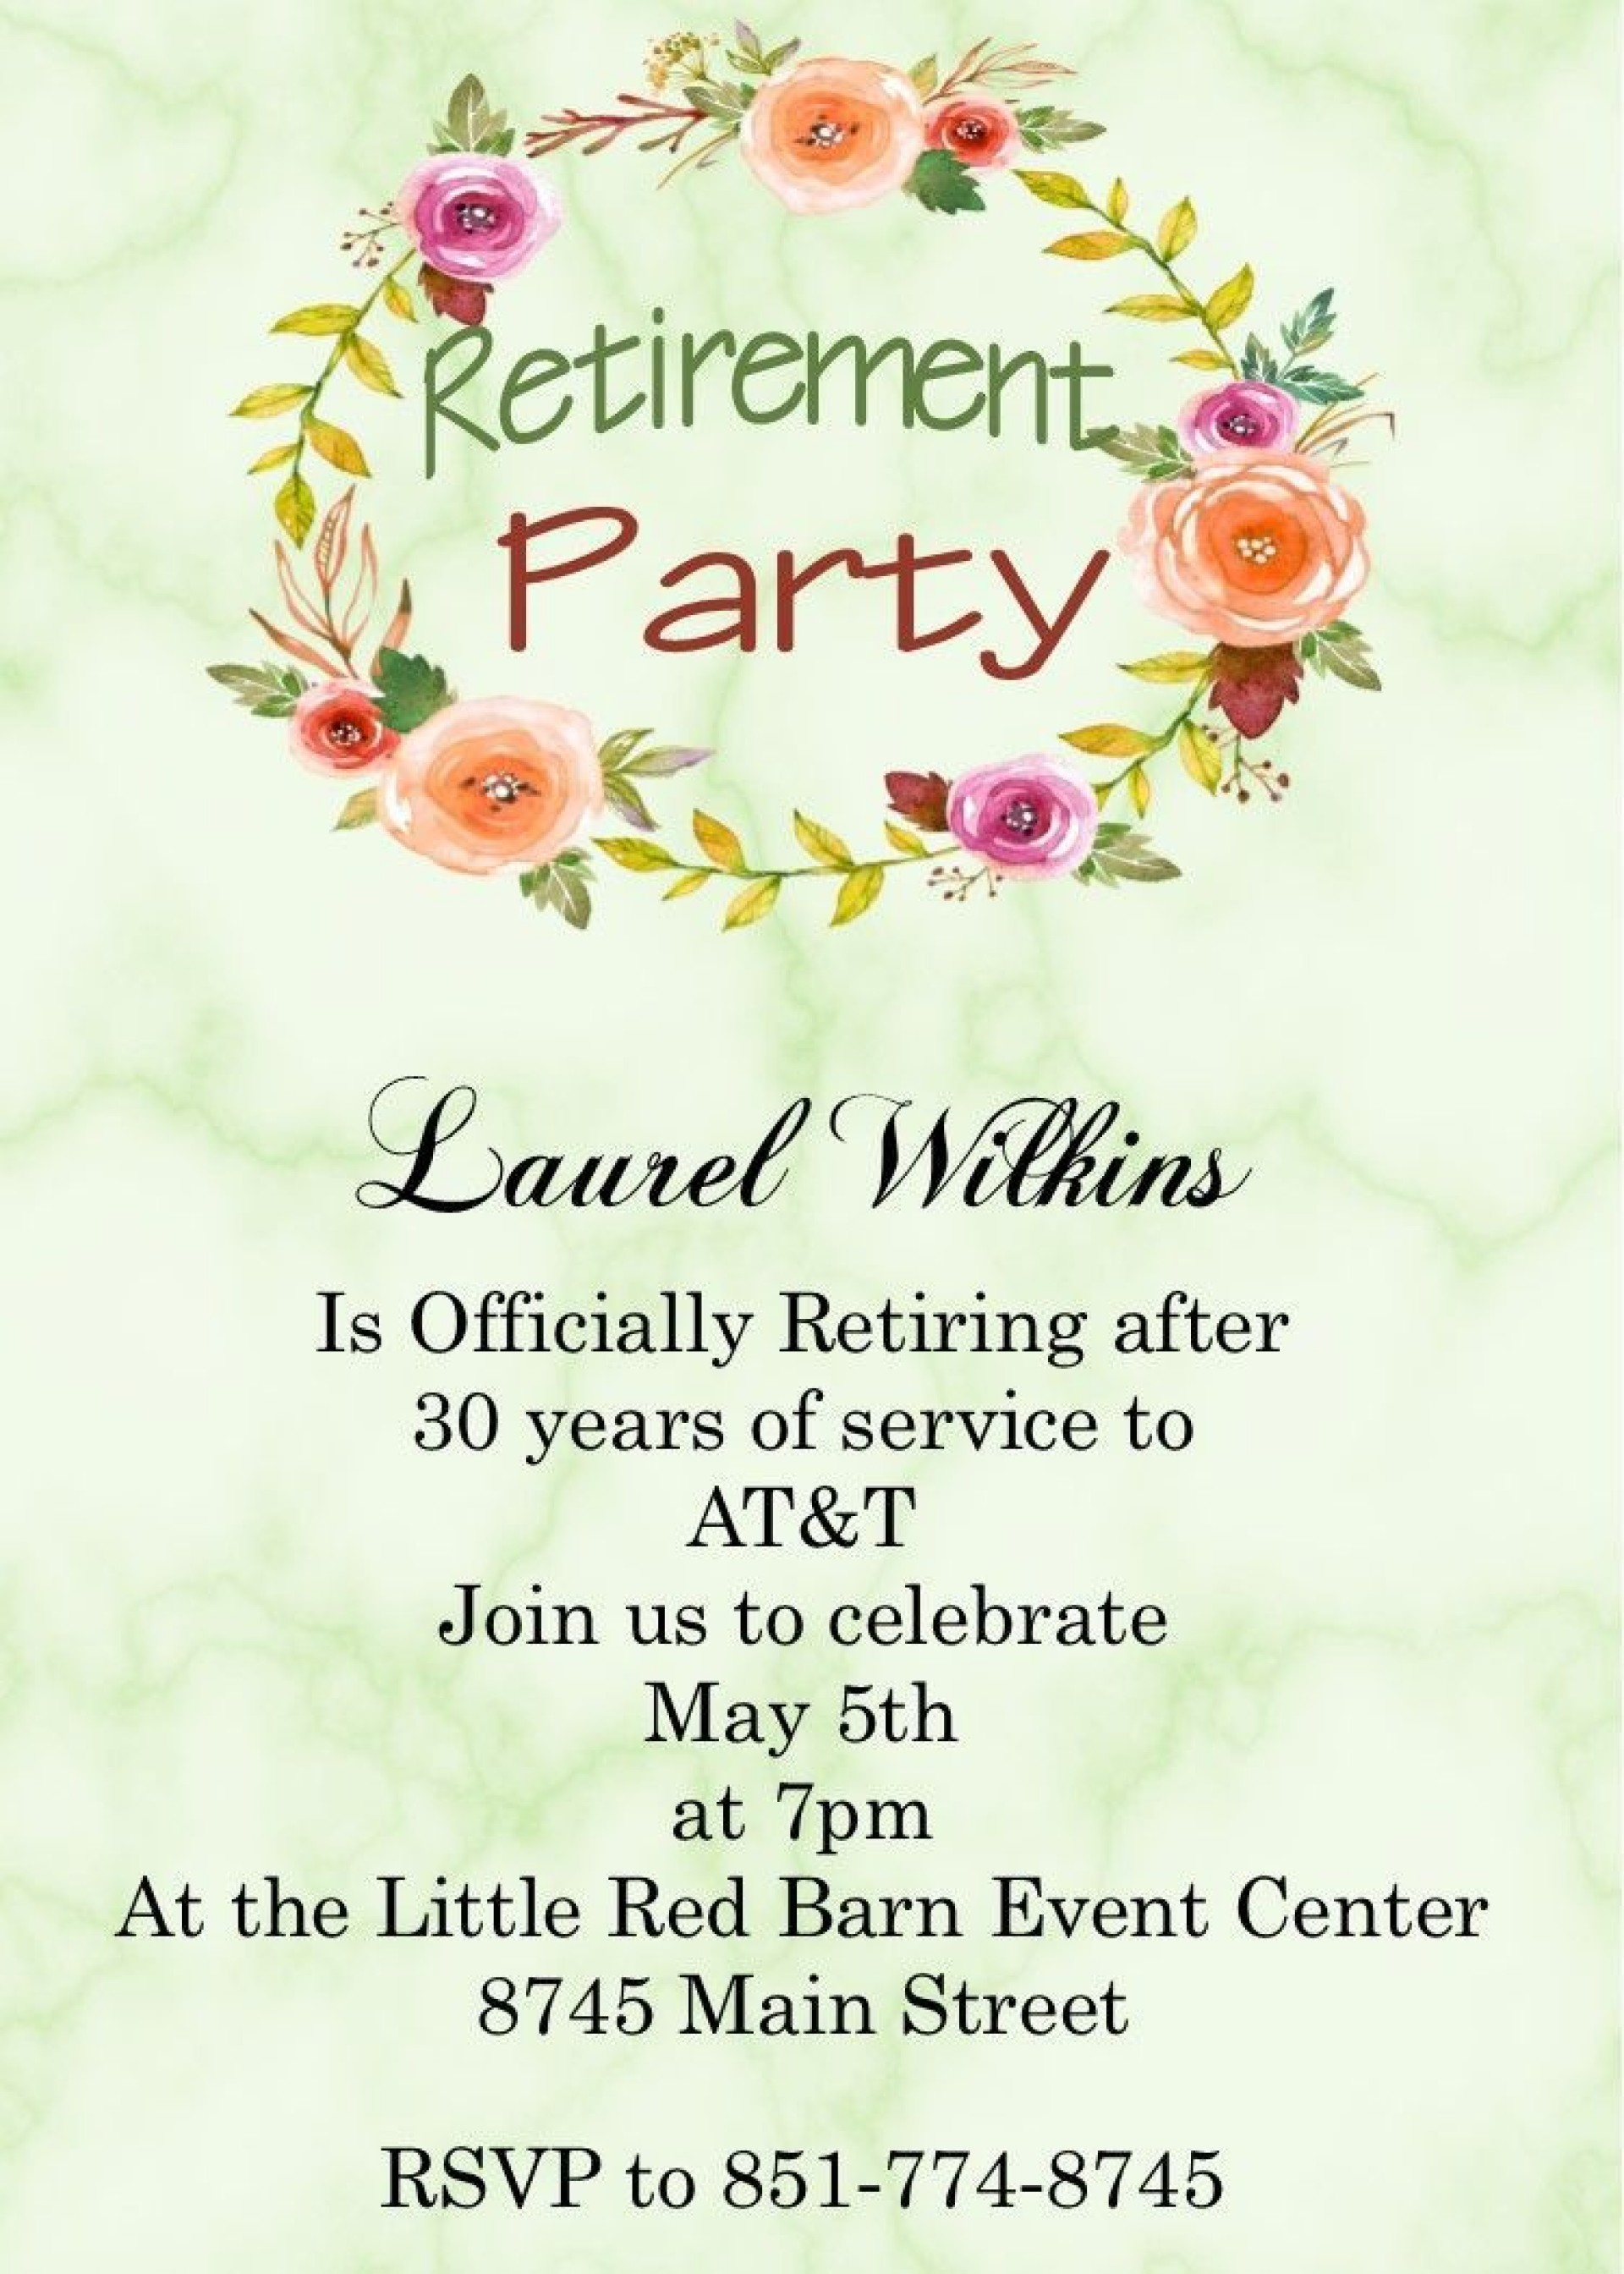 003 Staggering Retirement Party Invitation Template Sample  Templates For Free Nurse M Word1920